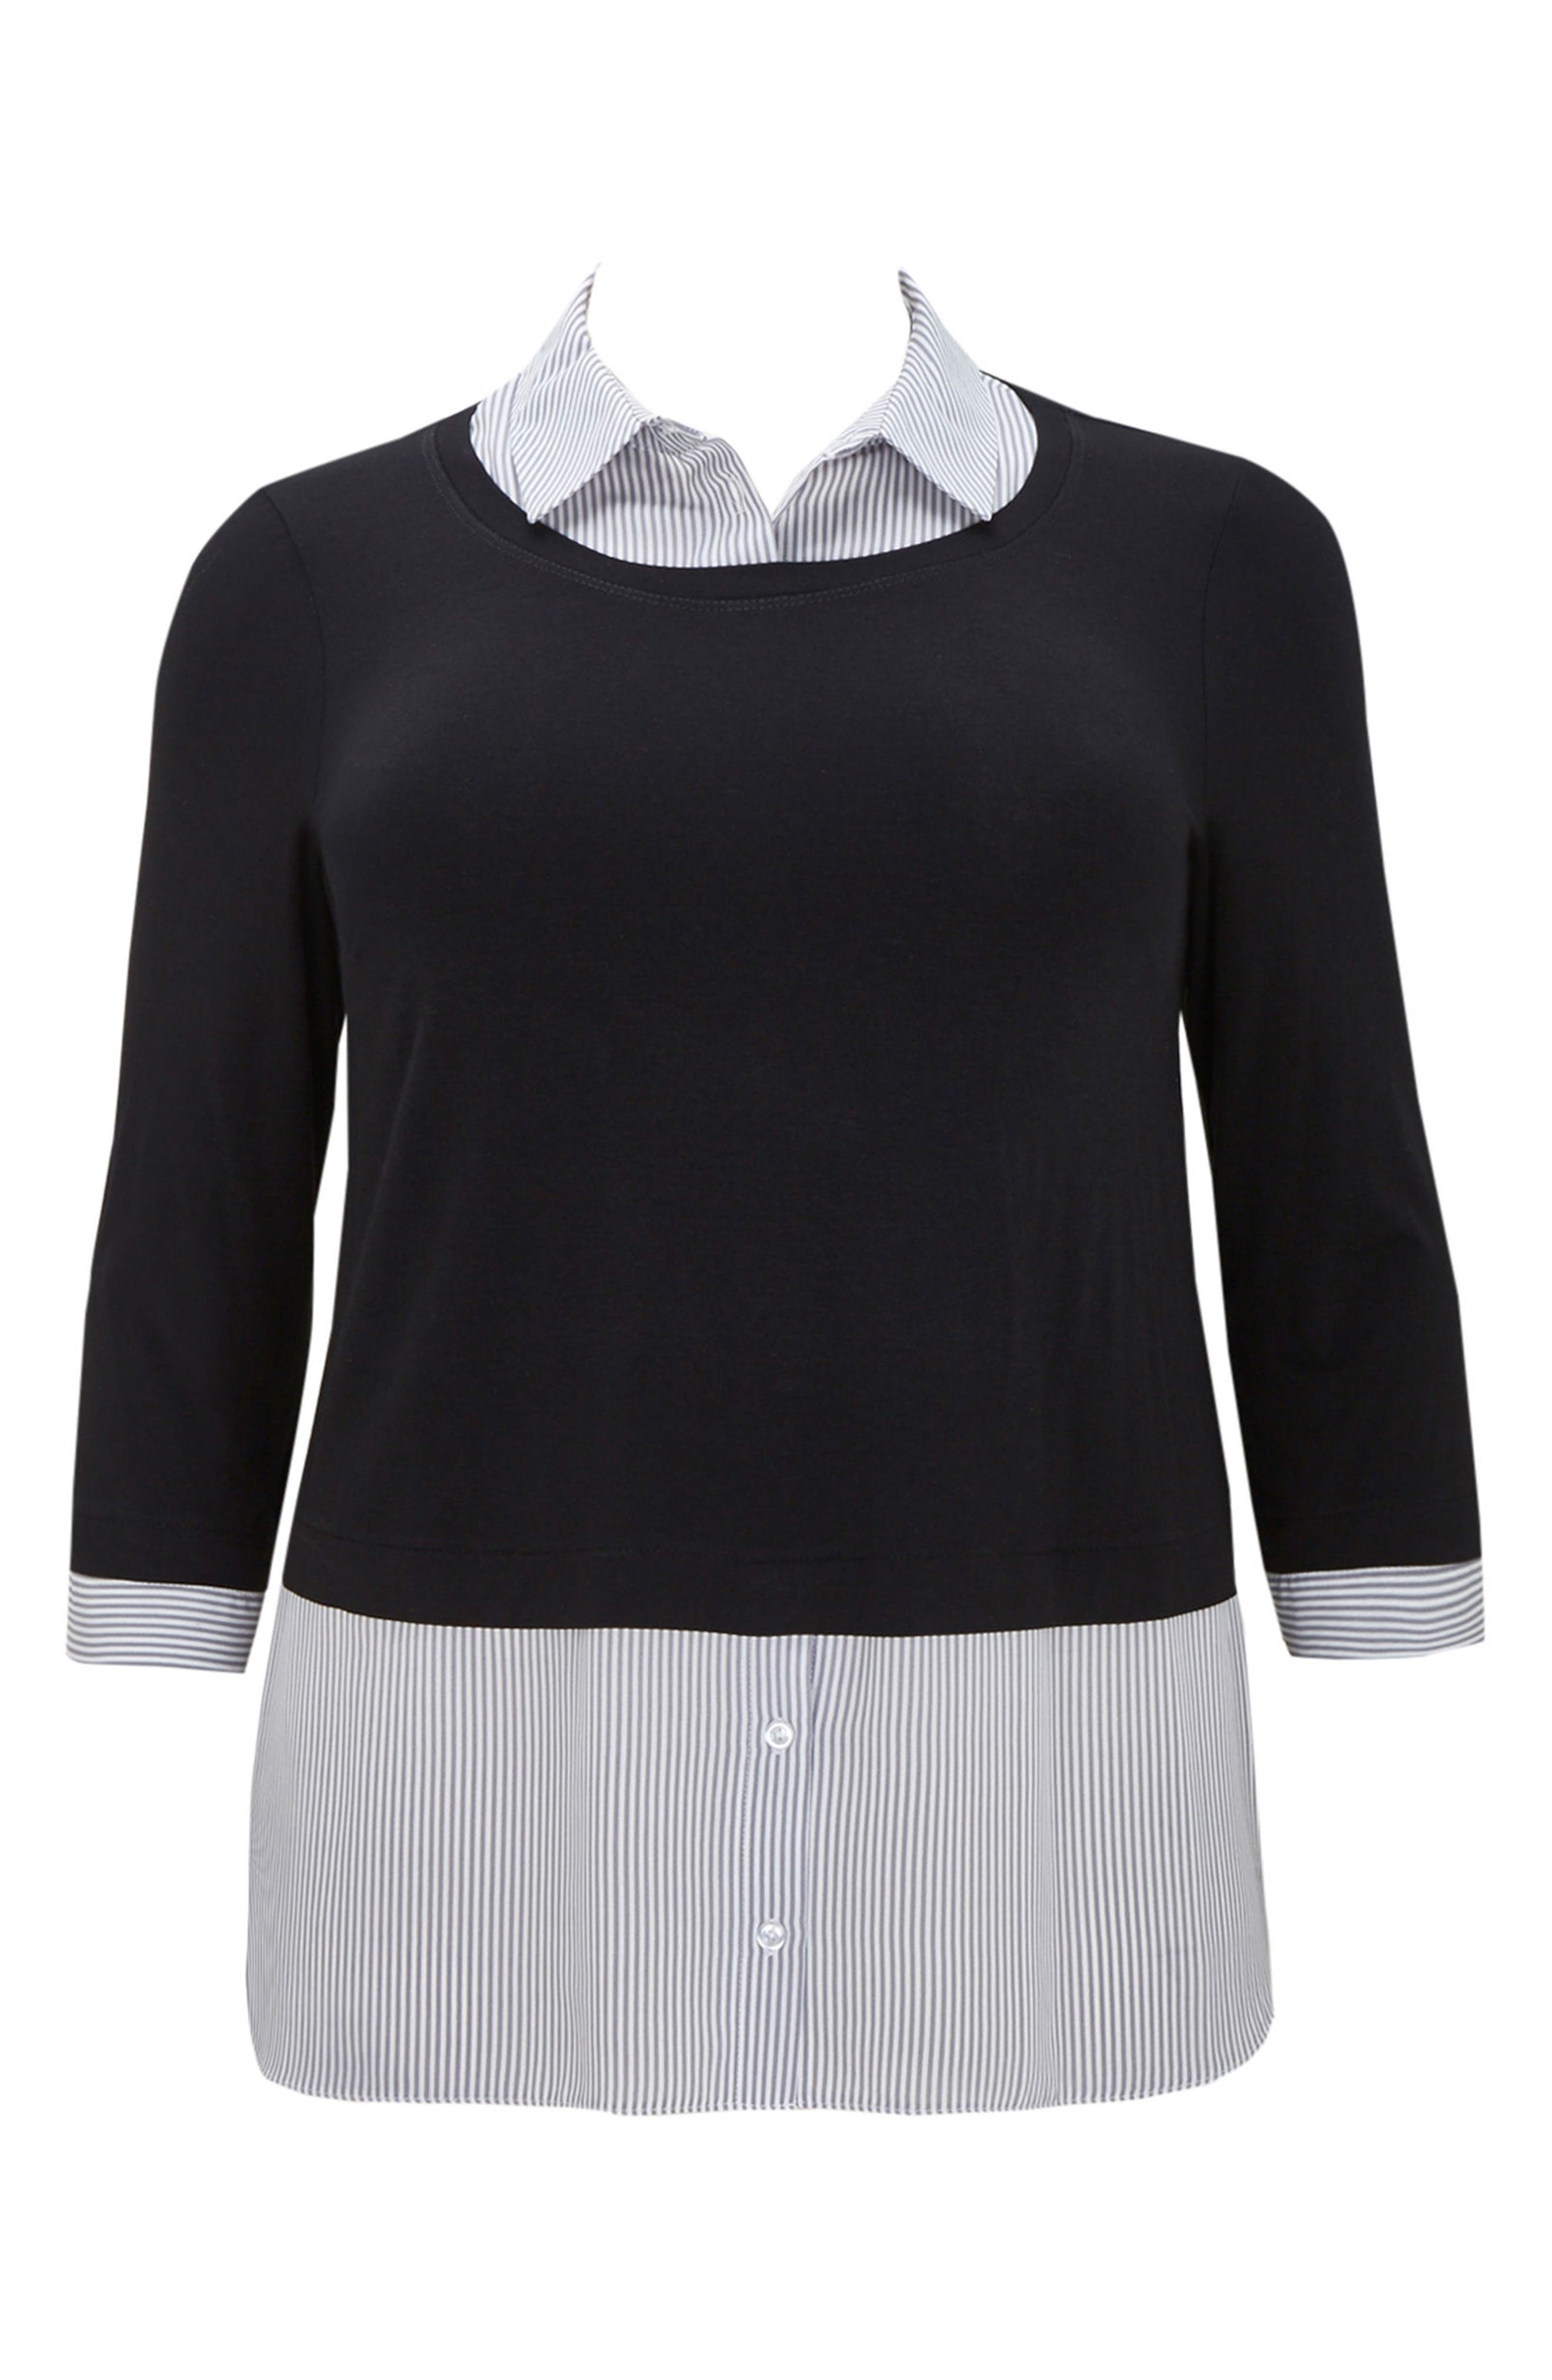 Stripe & Solid 2-in-1 Shirt,                             Alternate thumbnail 3, color,